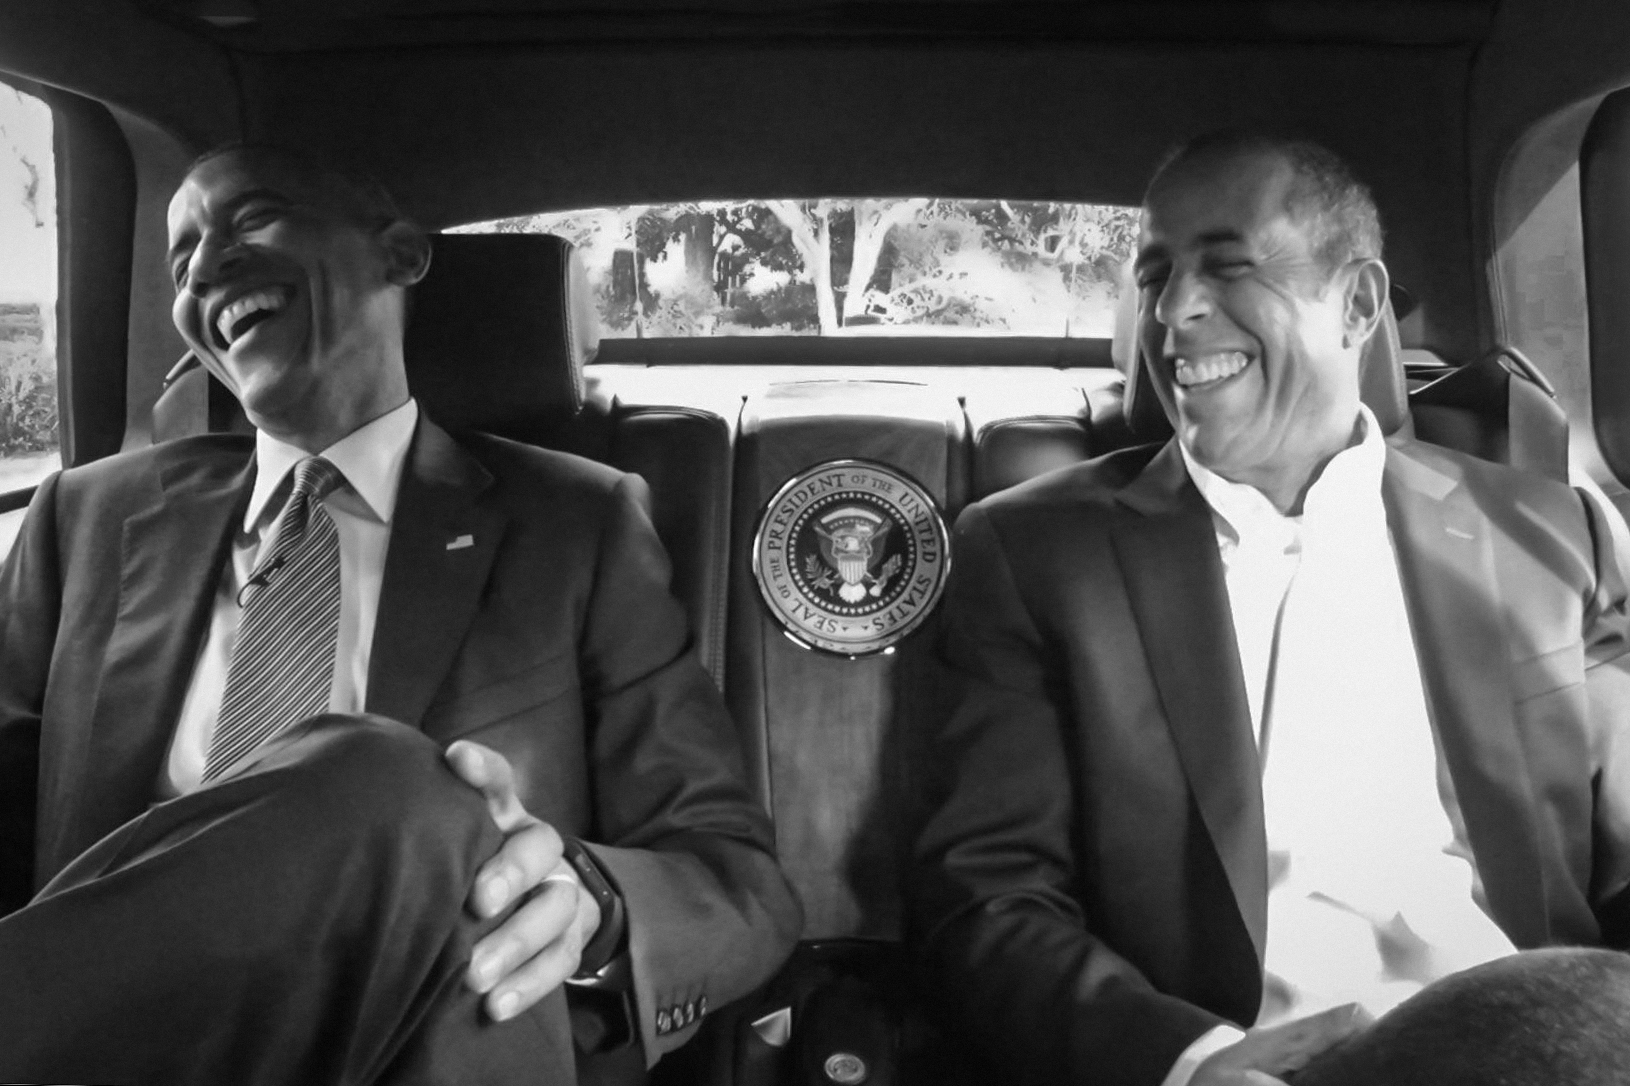 Comedians Cars Getting Coffee Obama